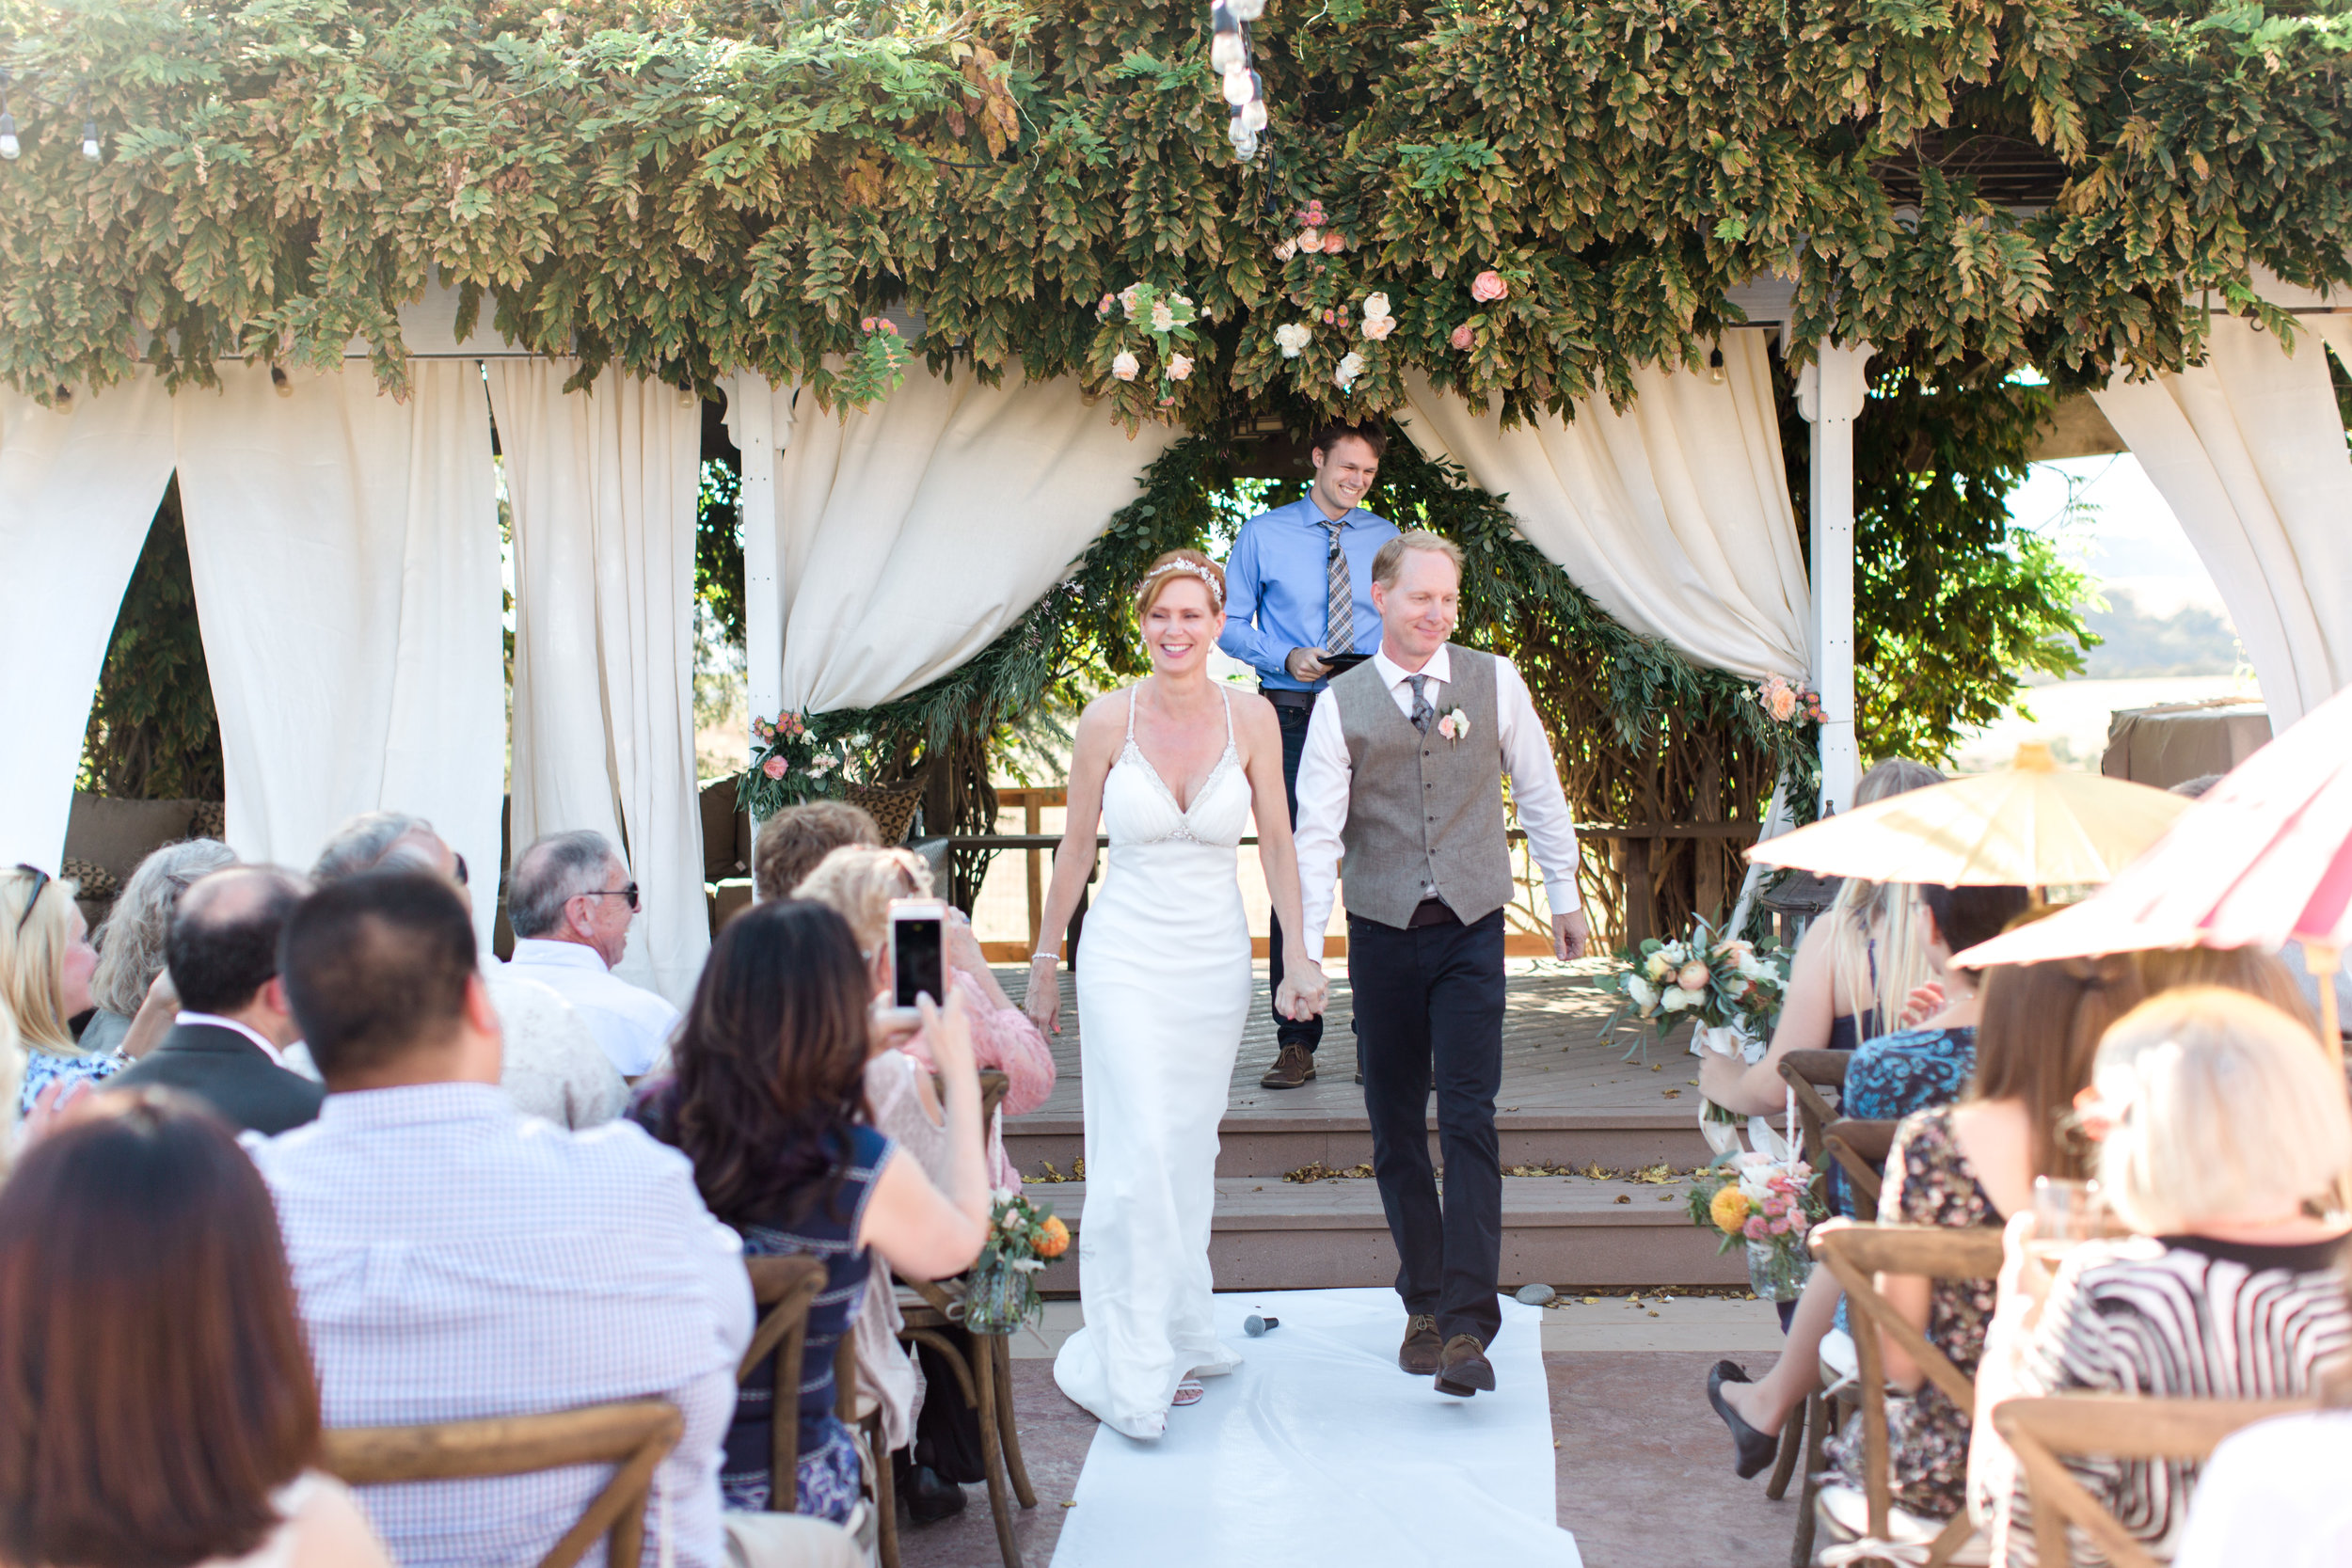 intimate-backyard-wedding-sonoma-california-20.jpg